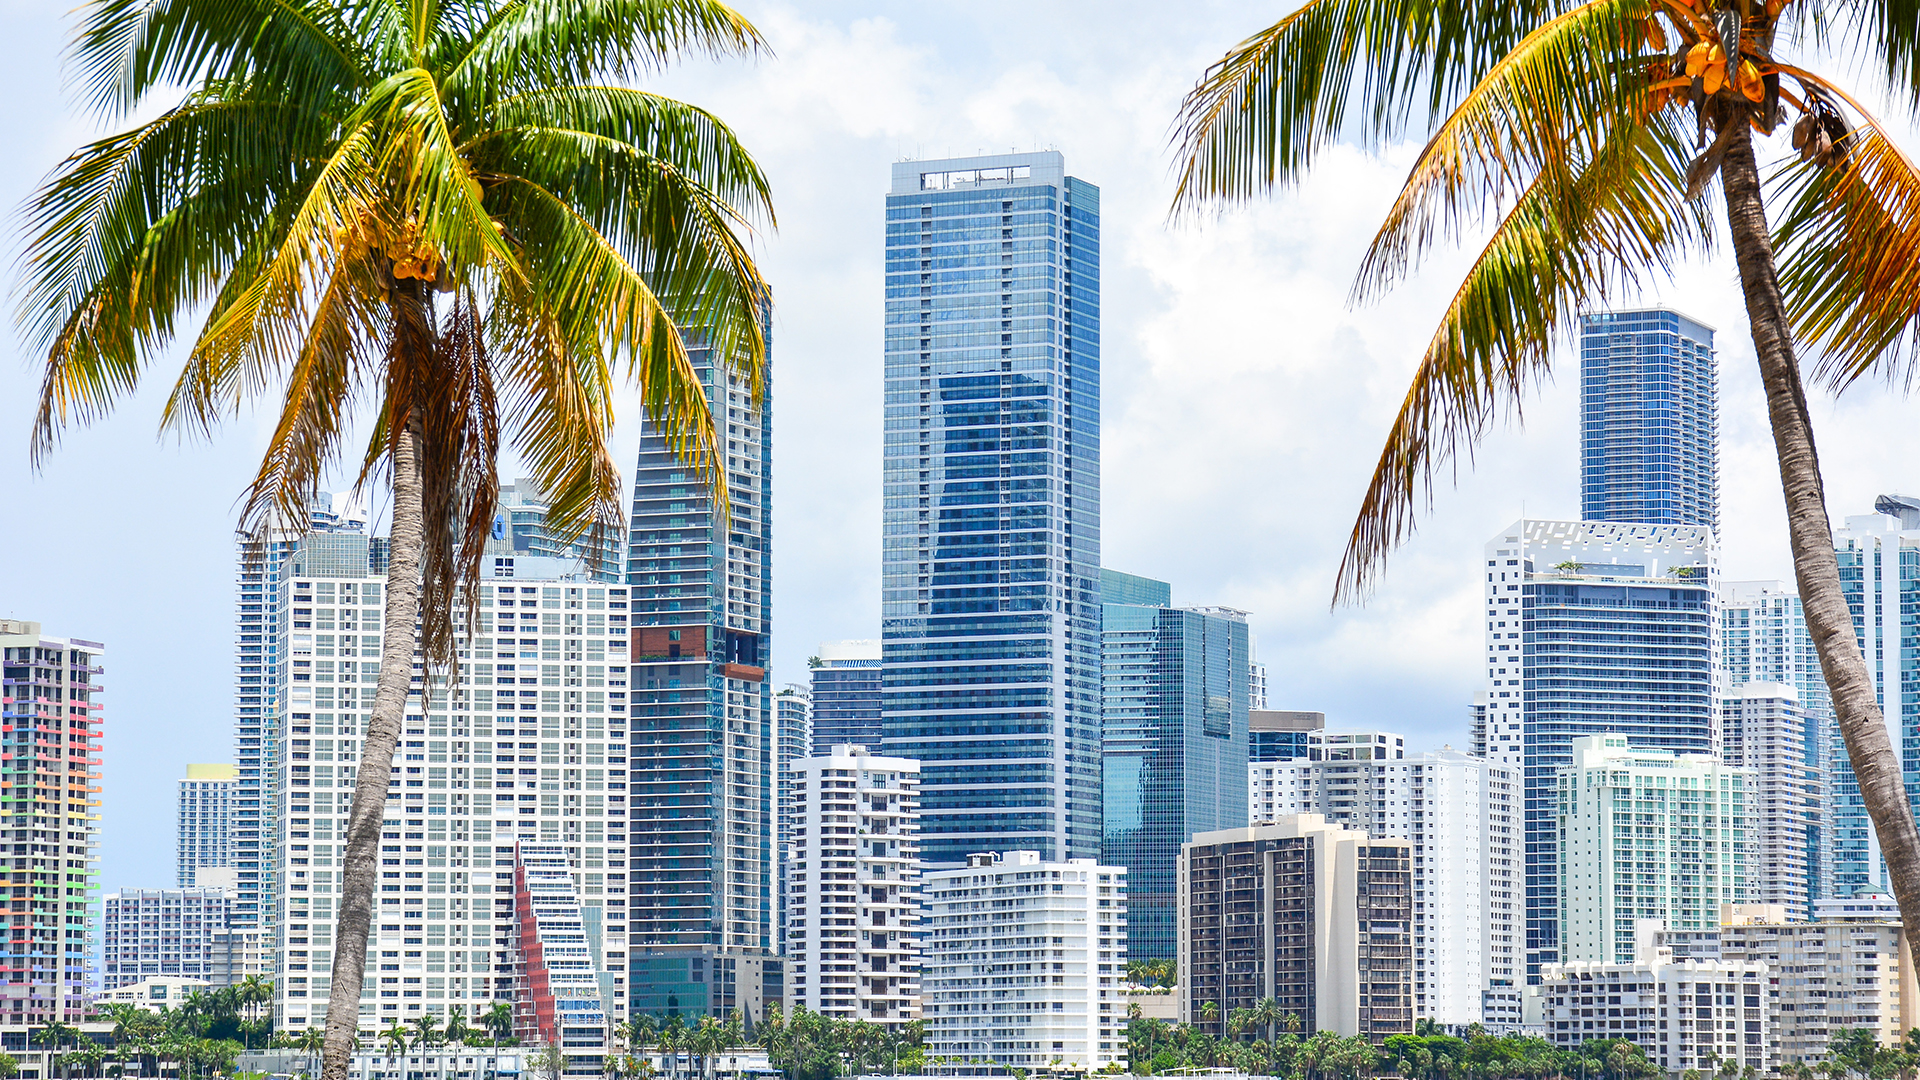 Downtown Miami skyline along waterfront seen through palm tress in South Florida